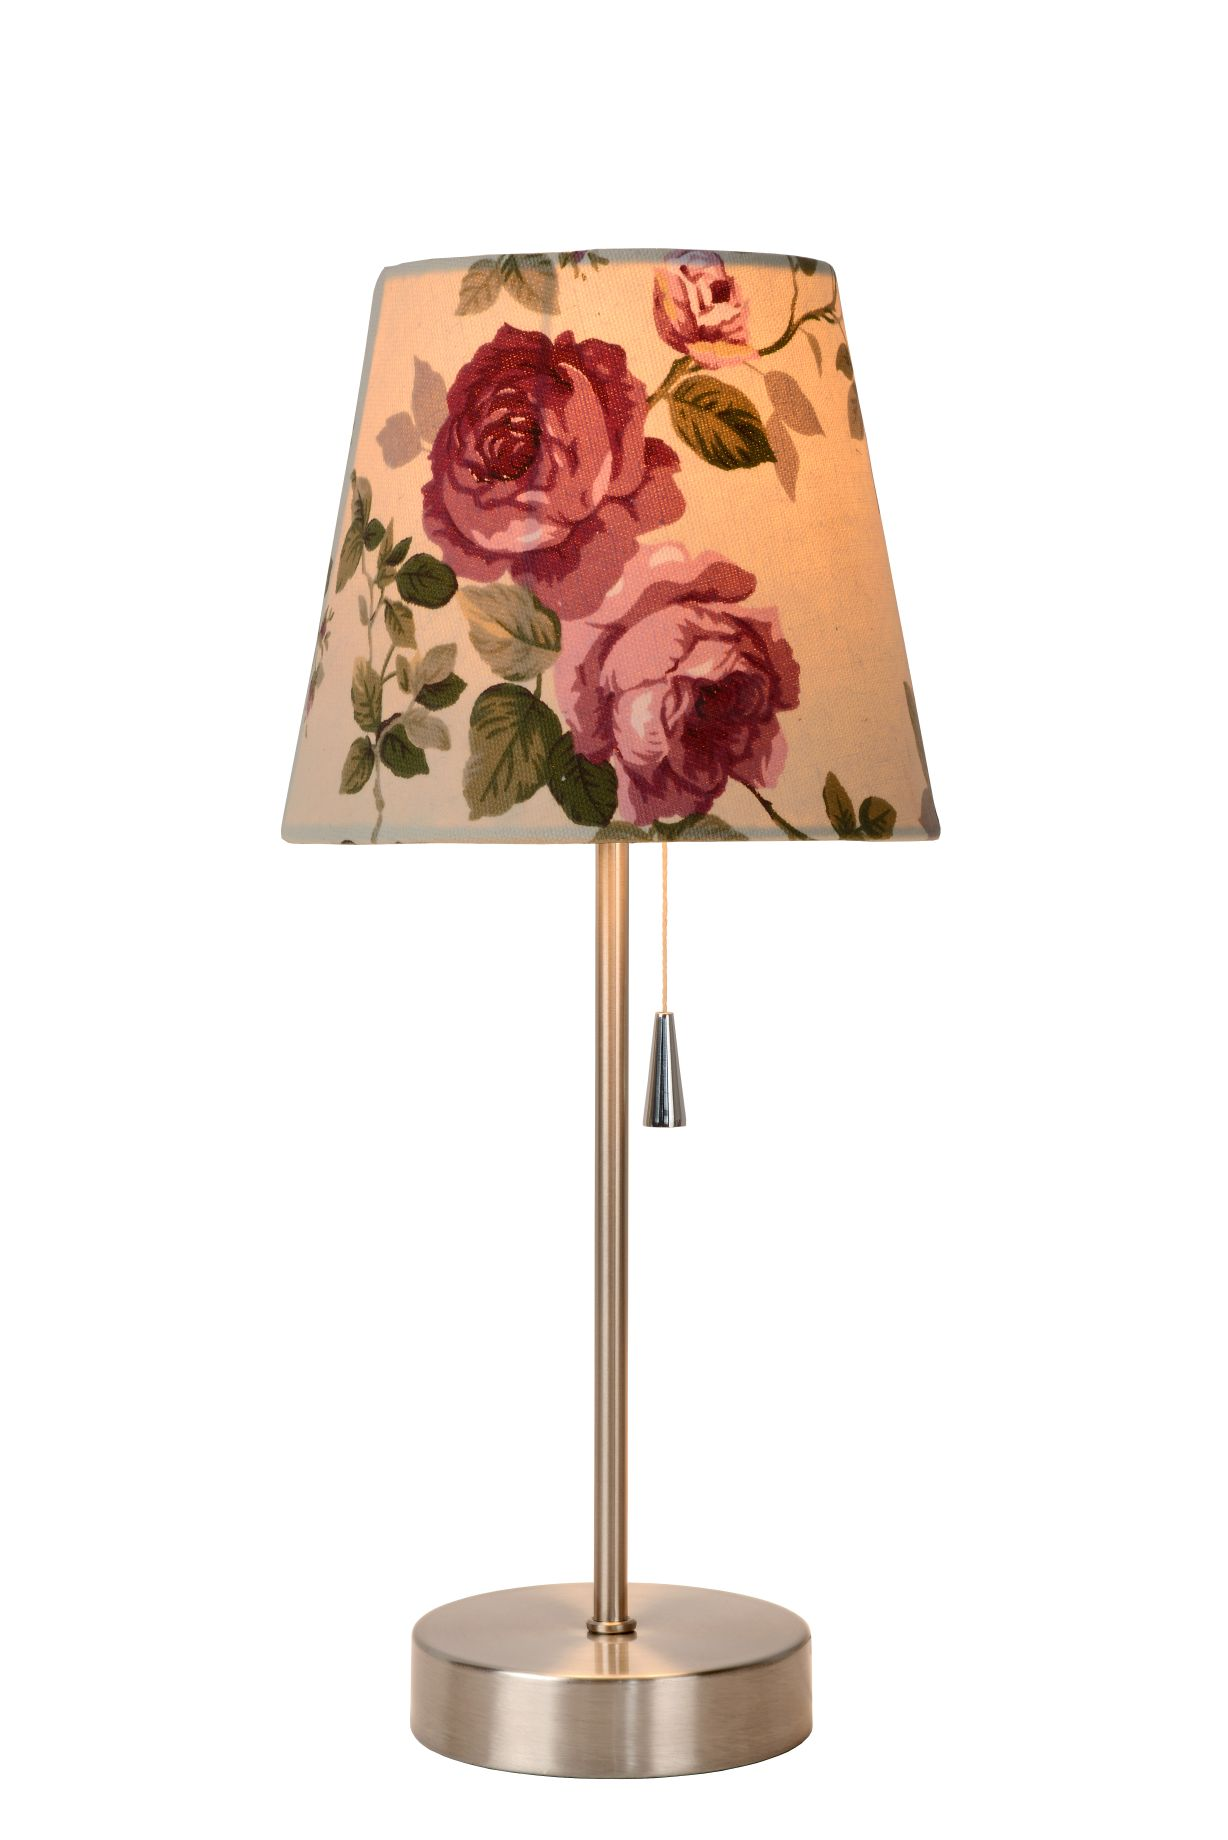 YOKO Table lamp E27 H40.5 Shade 12/18/15 Flower pr